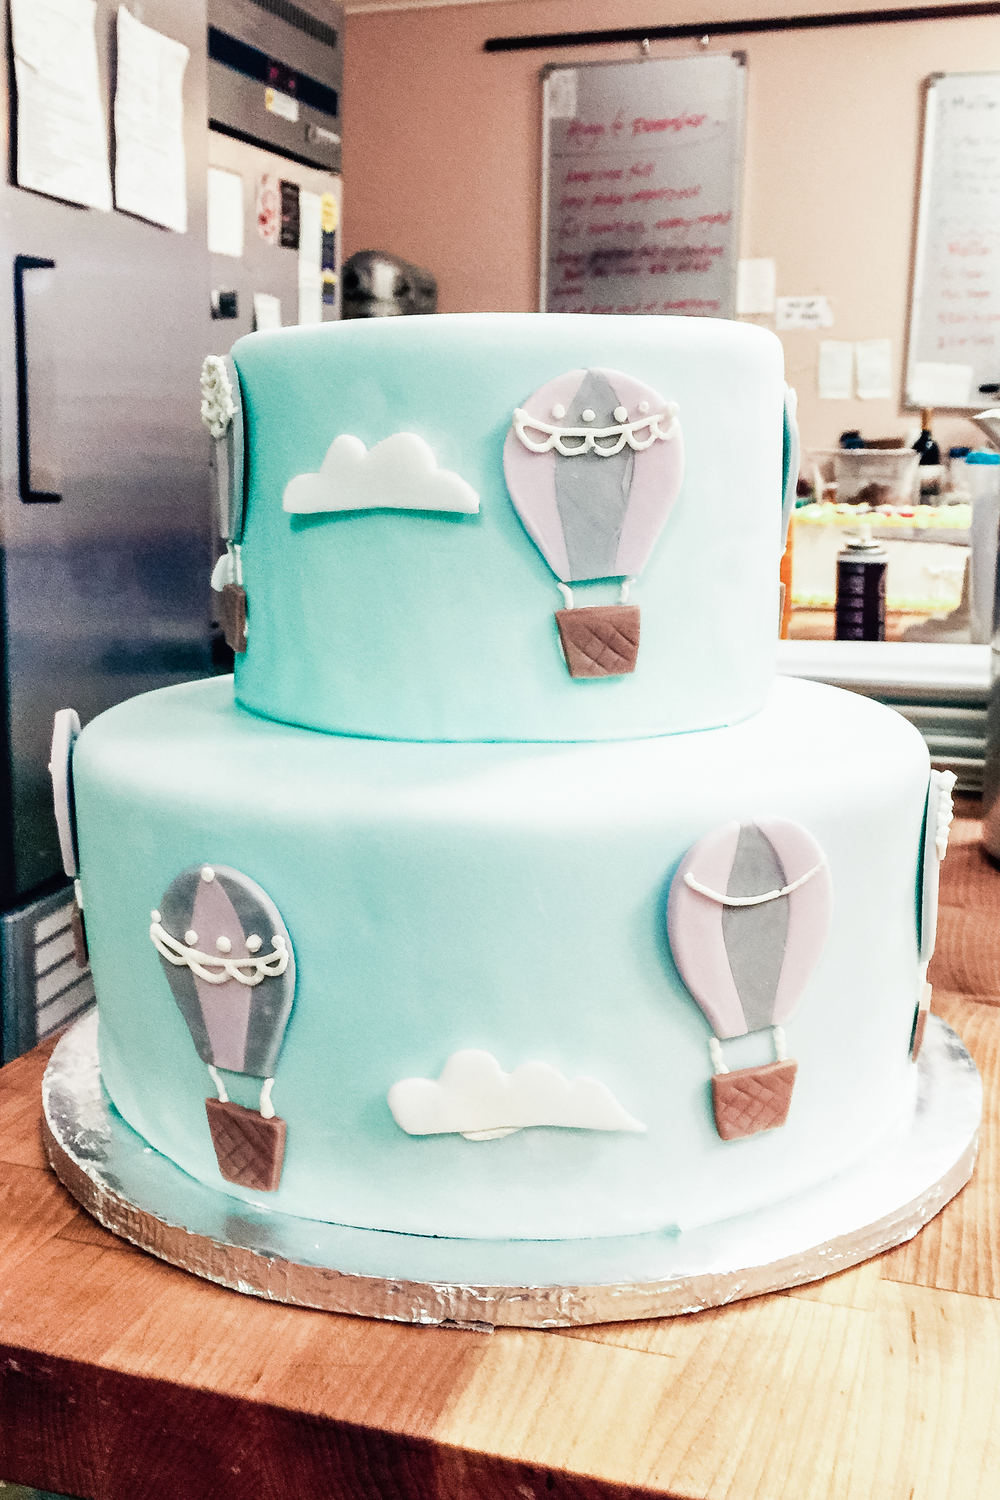 Specialy Cakes Marie Shannon Confections Ventura CA-1.jpg